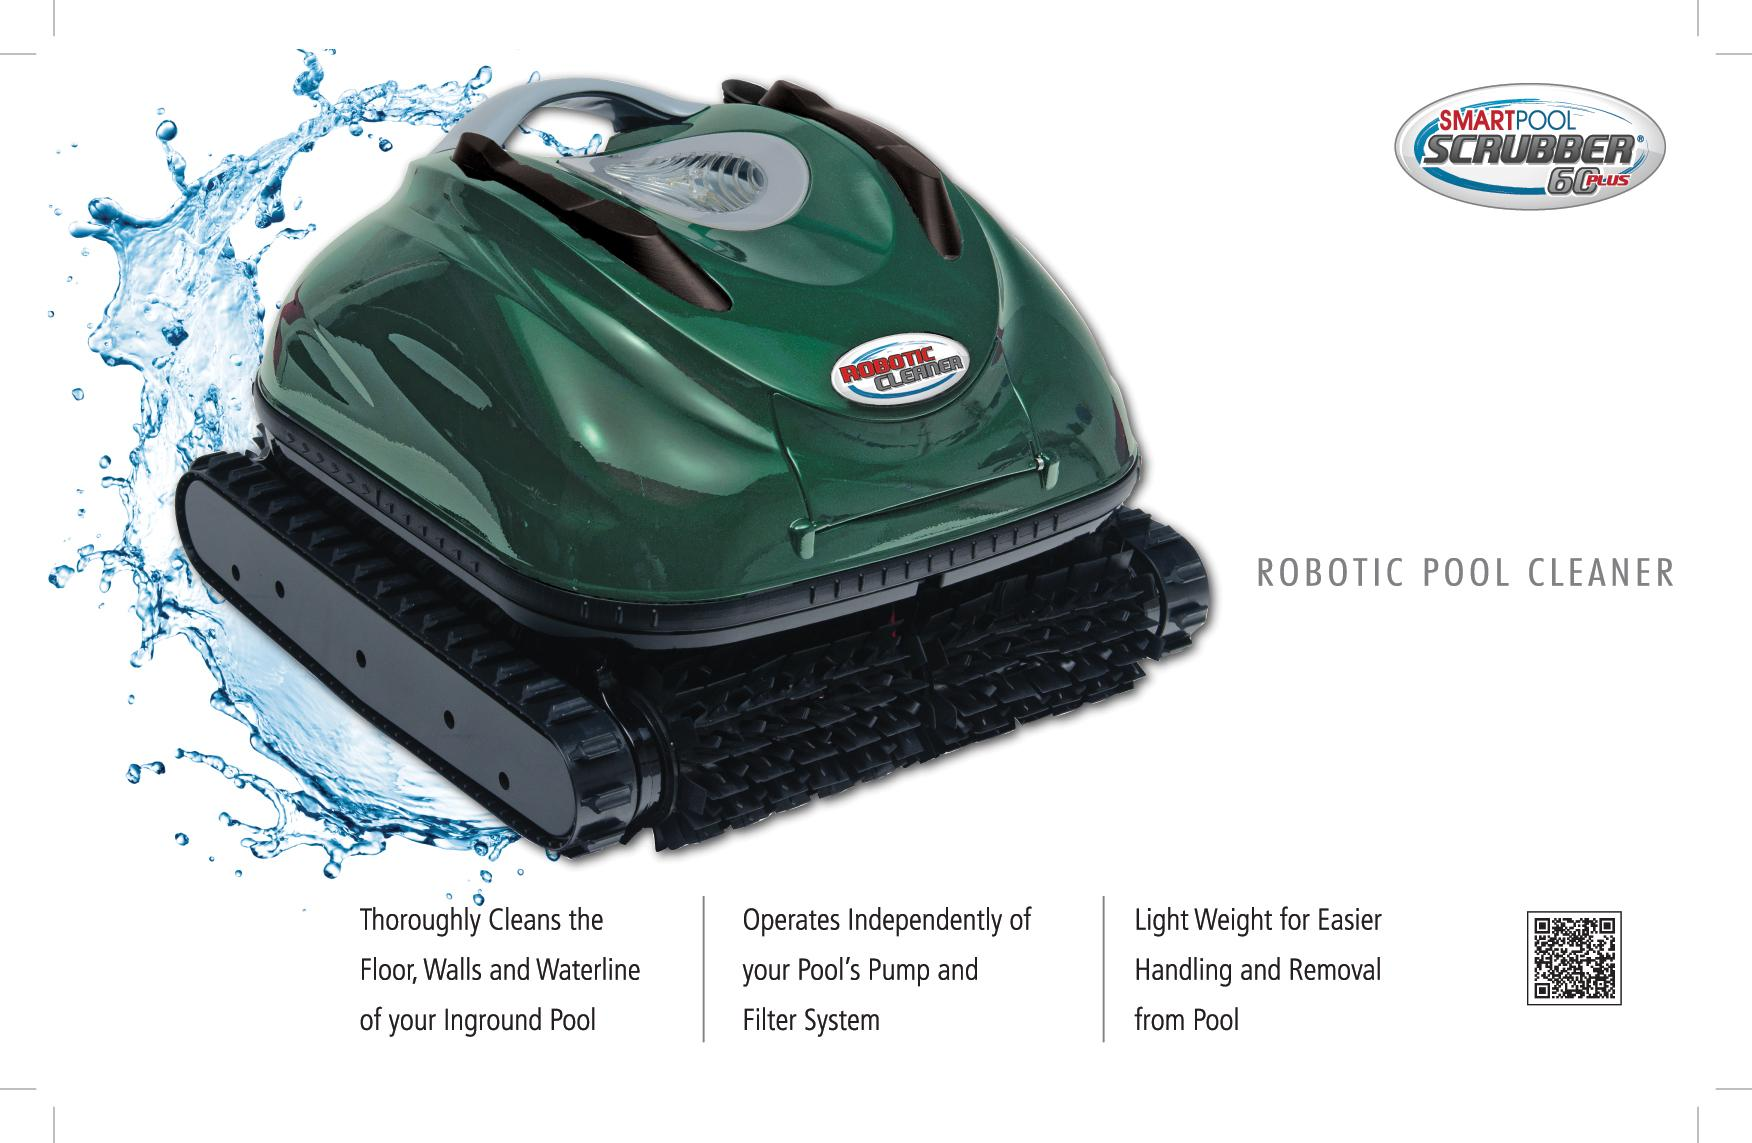 Amazon Com Smartpool Nc74 Scrubber 60 Plus Robotic Pool